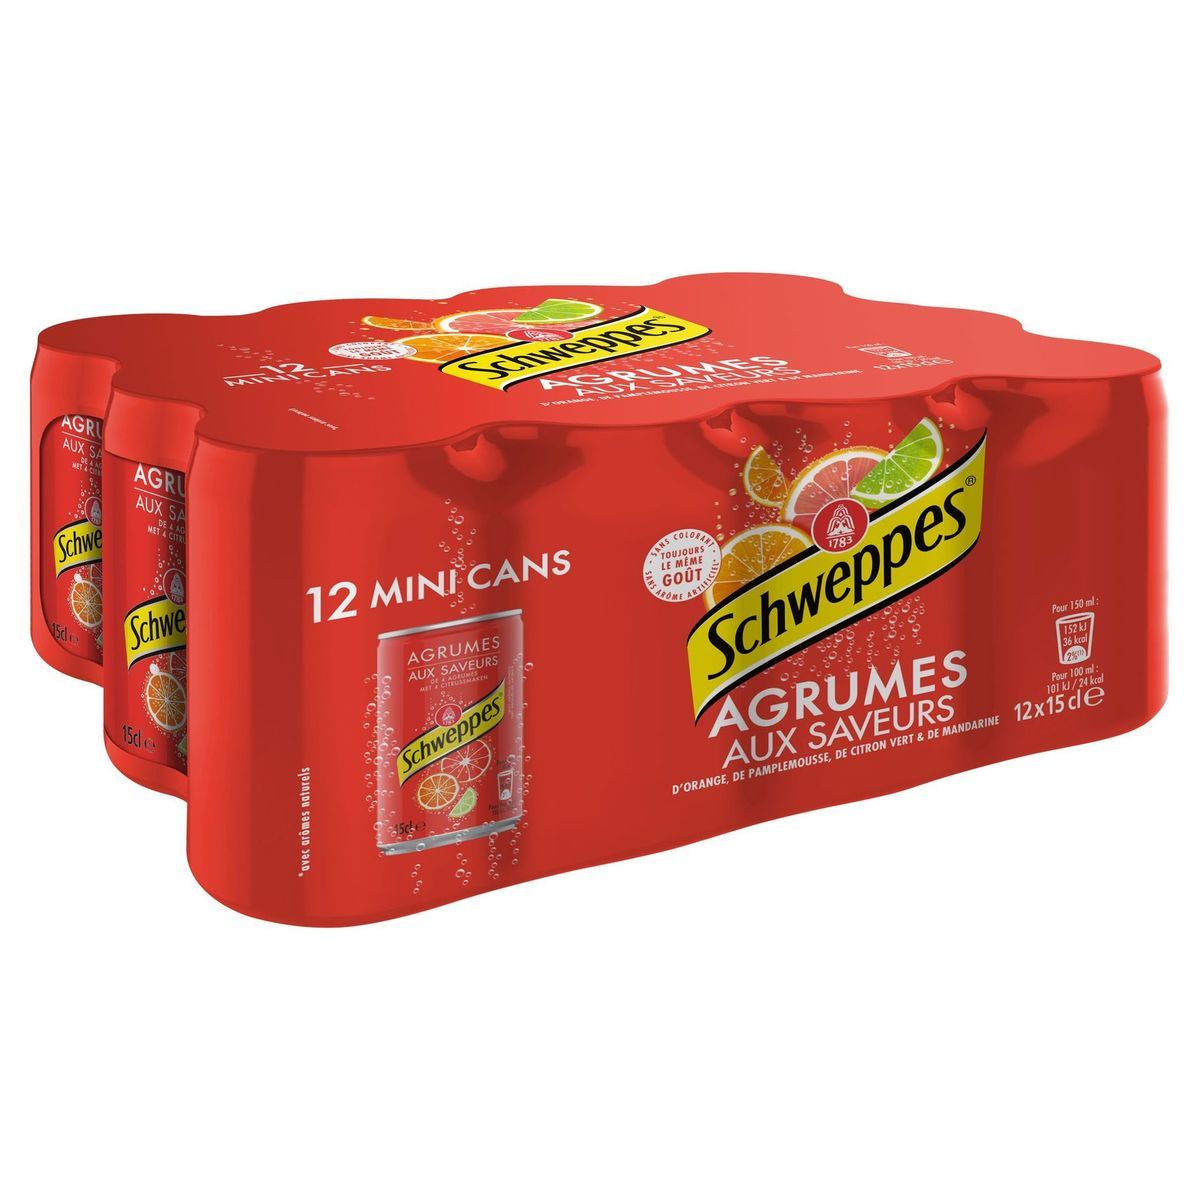 SCHWEPPES AGRUMES 12 x 15 cl